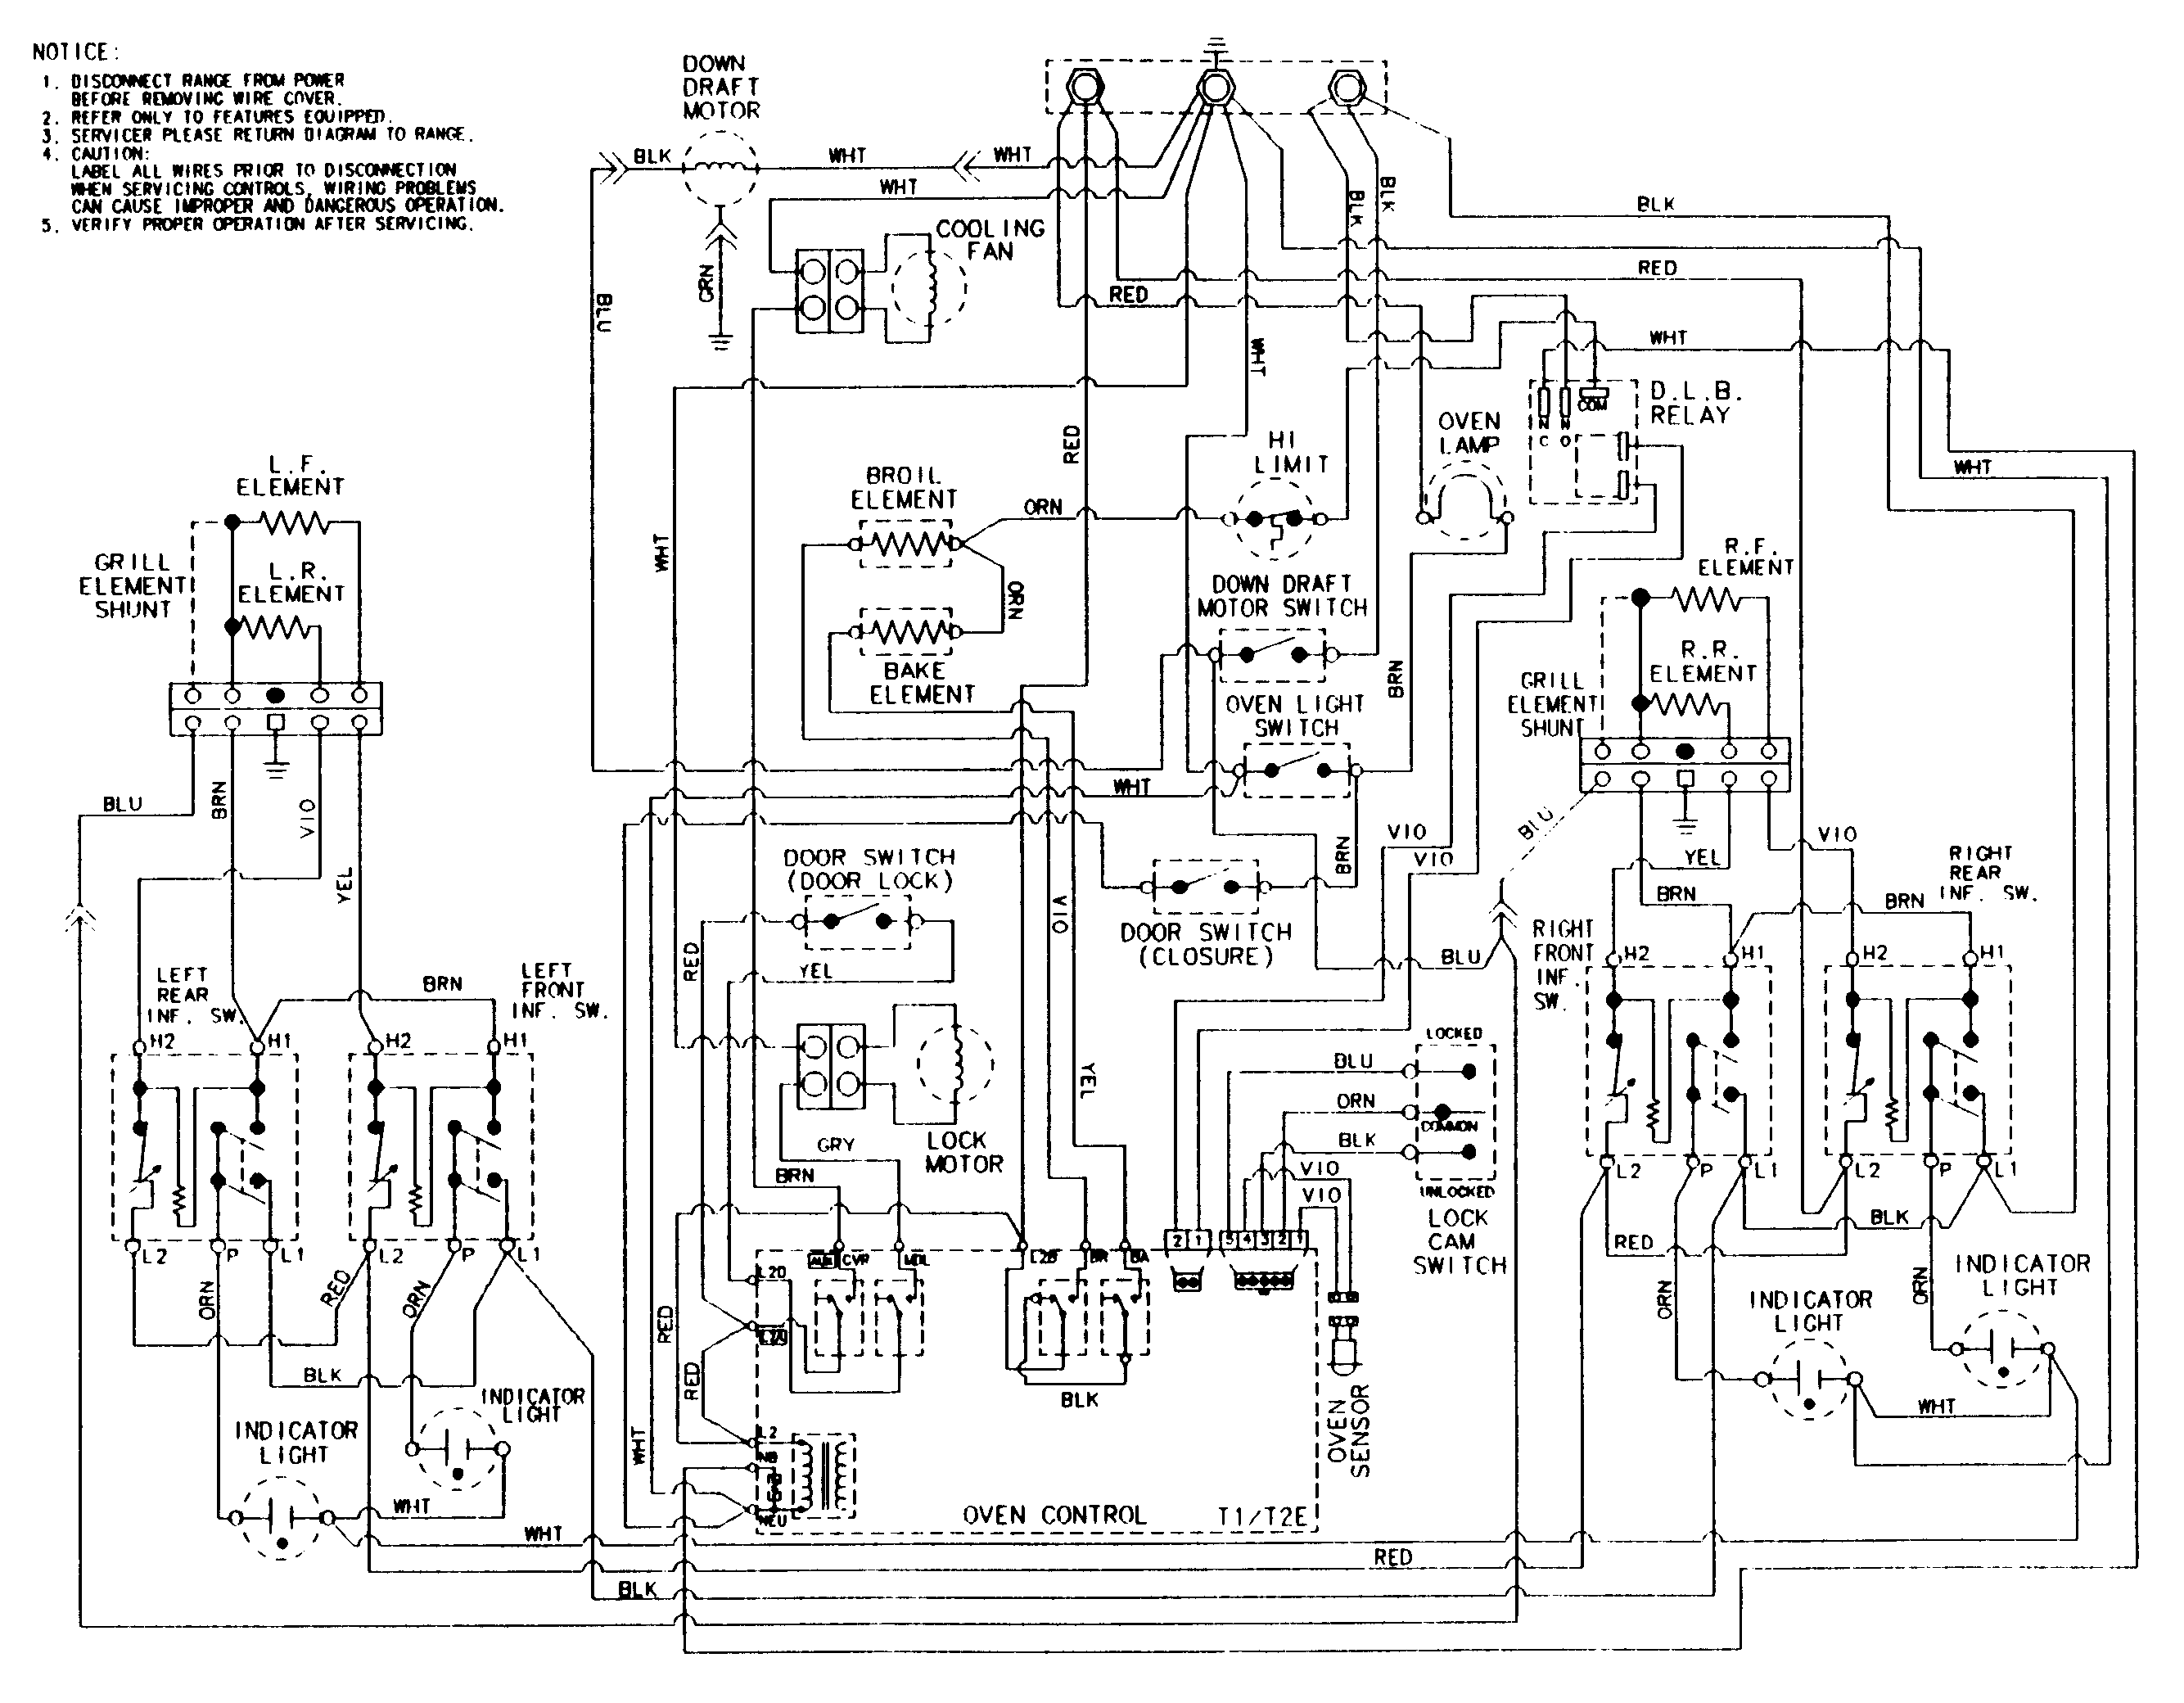 control panel wiring schematic